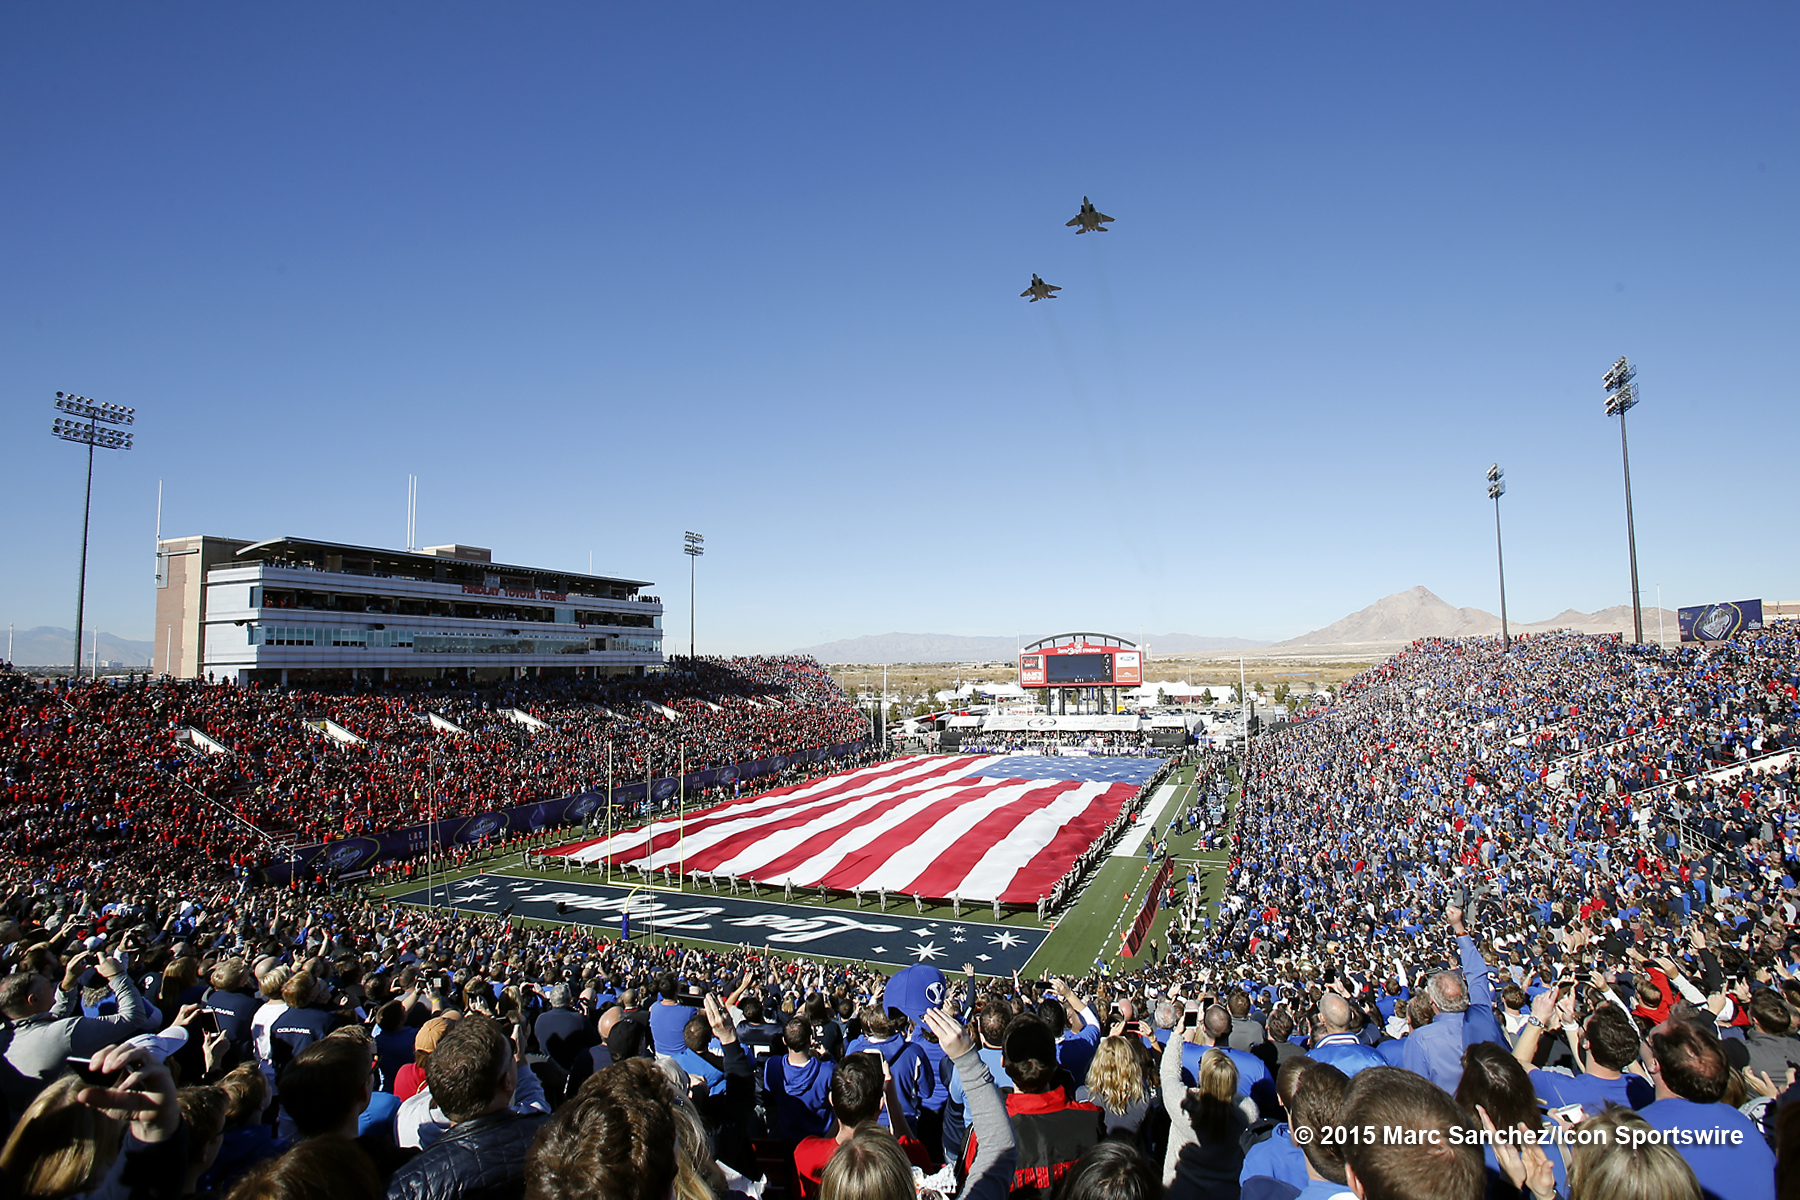 2015 December 19: Fans watch as two F-15 fighter jets fly over the field during the Royal Purple Las Vegas Bowl at Sam Boyd Stadium in Las Vegas, Nevada.